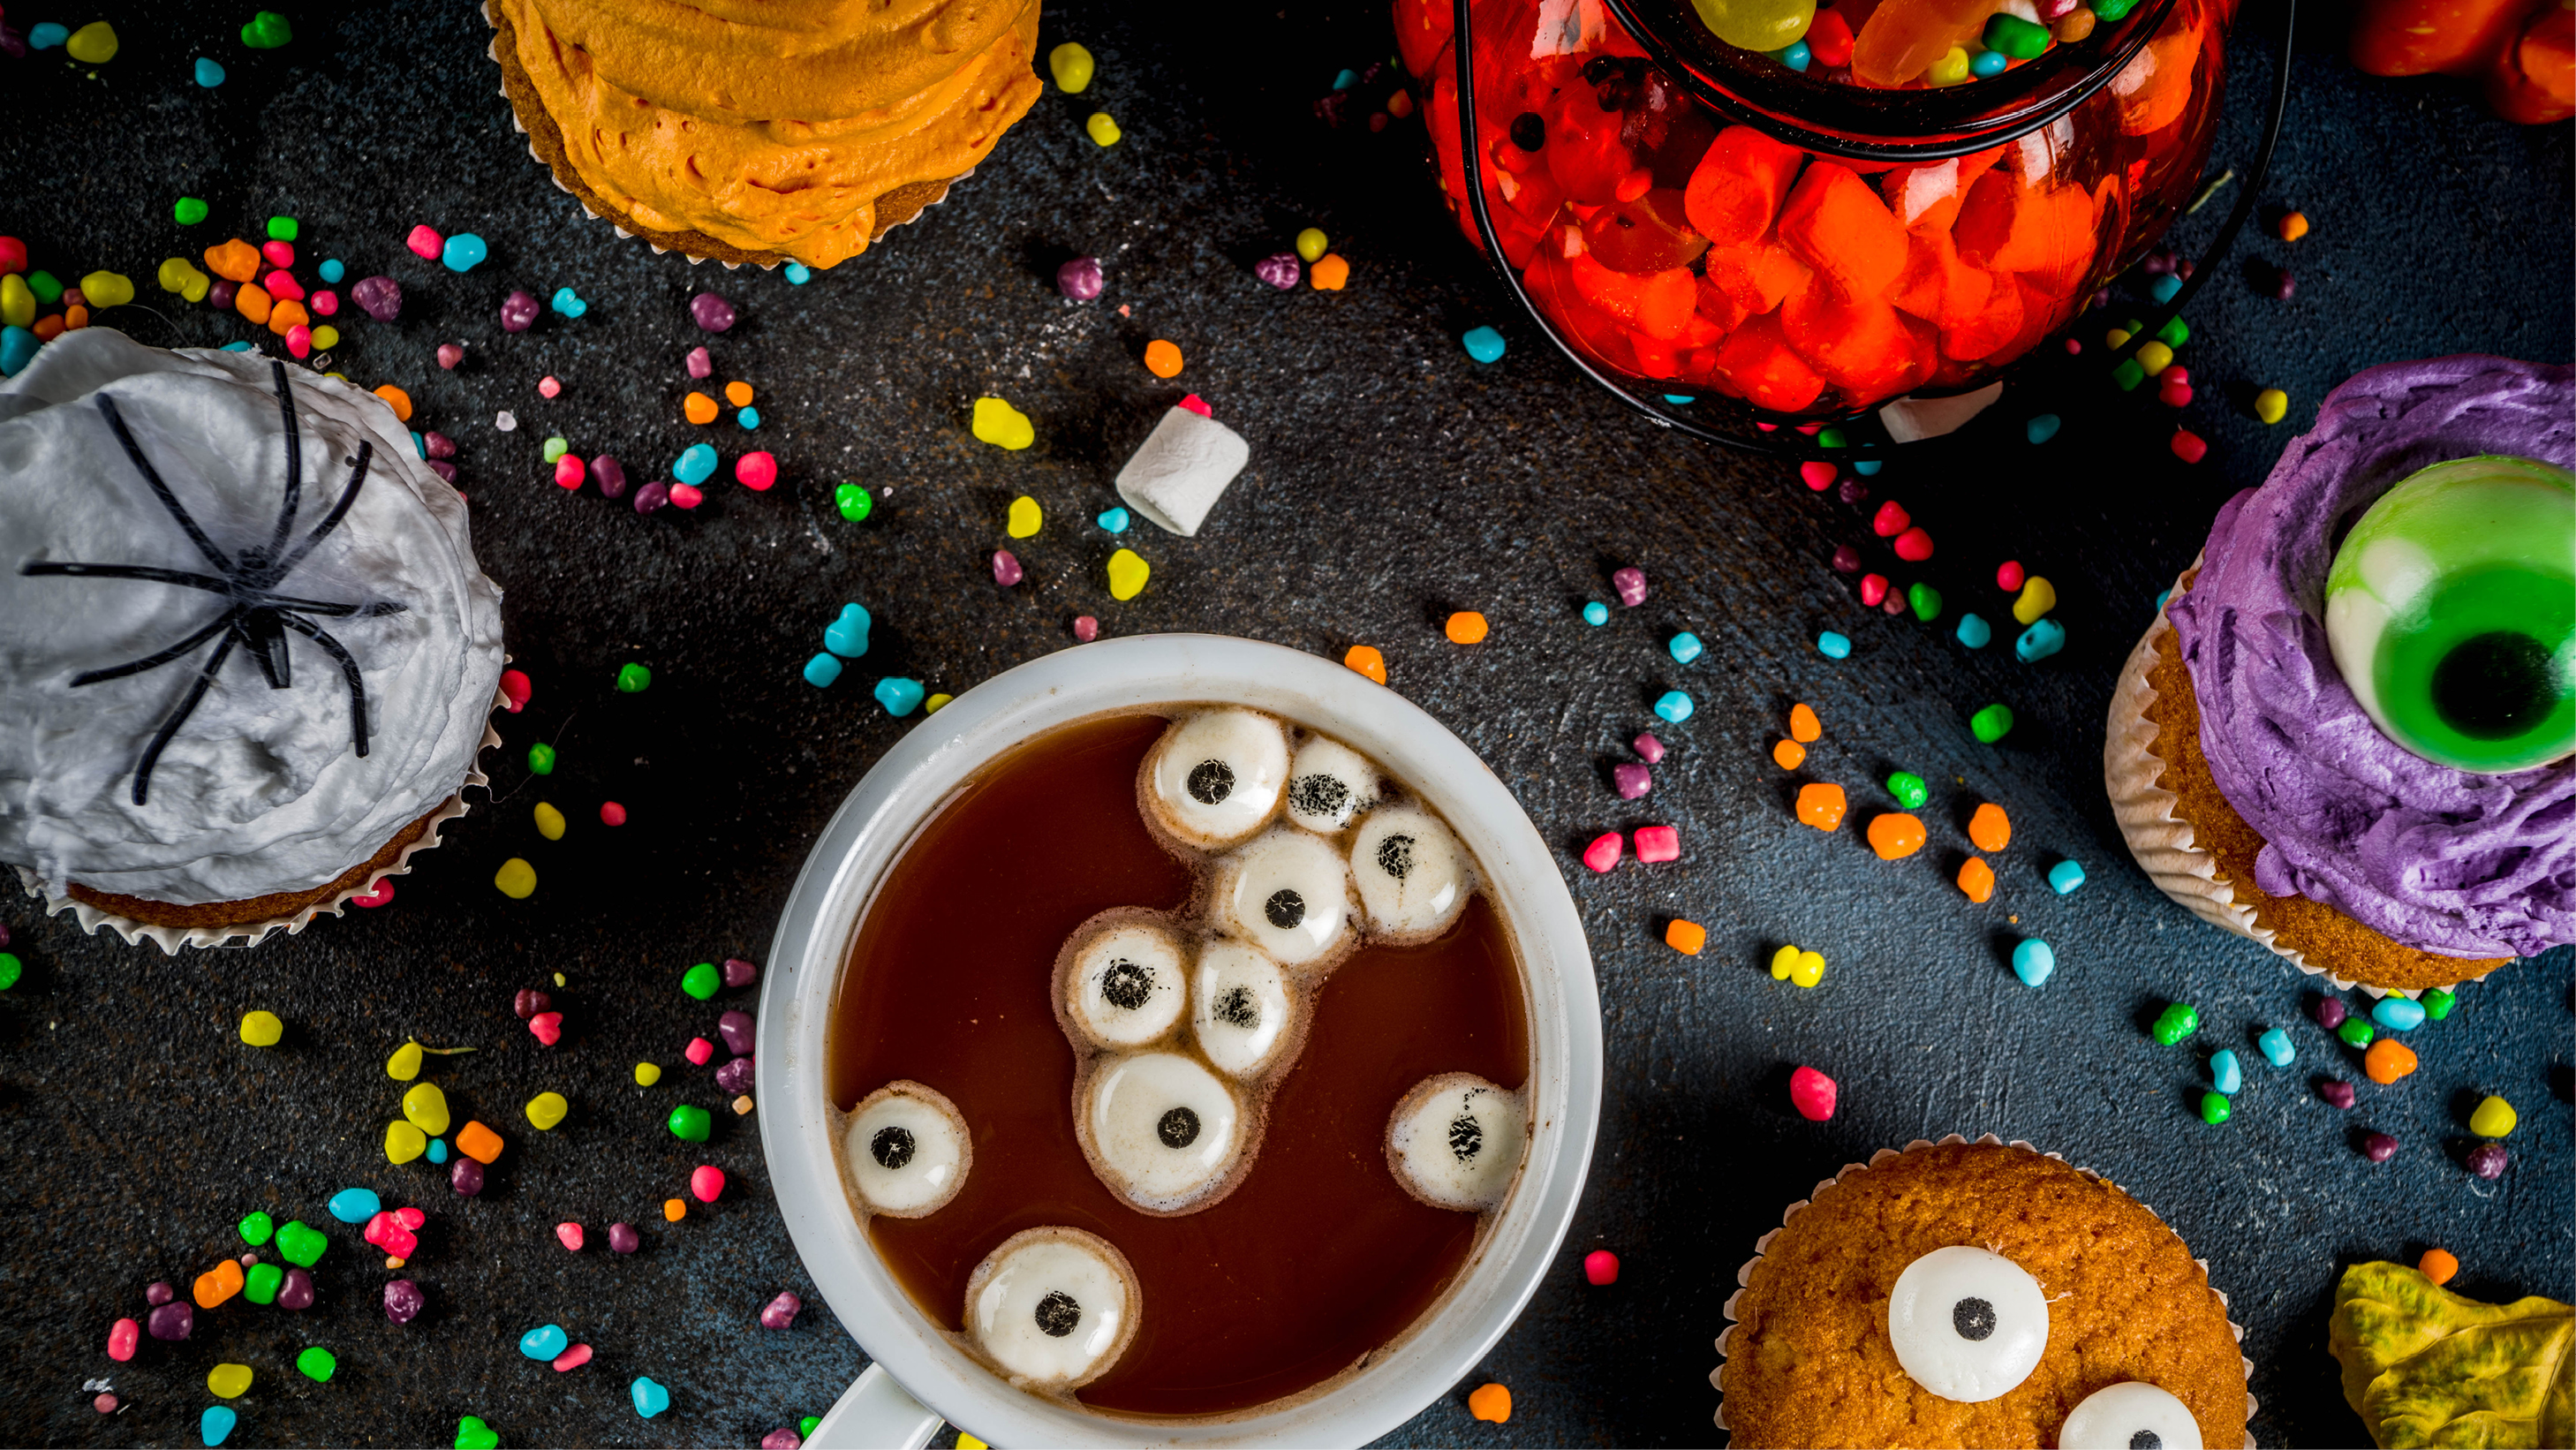 Table with bowls of Halloween candy and sprinkles